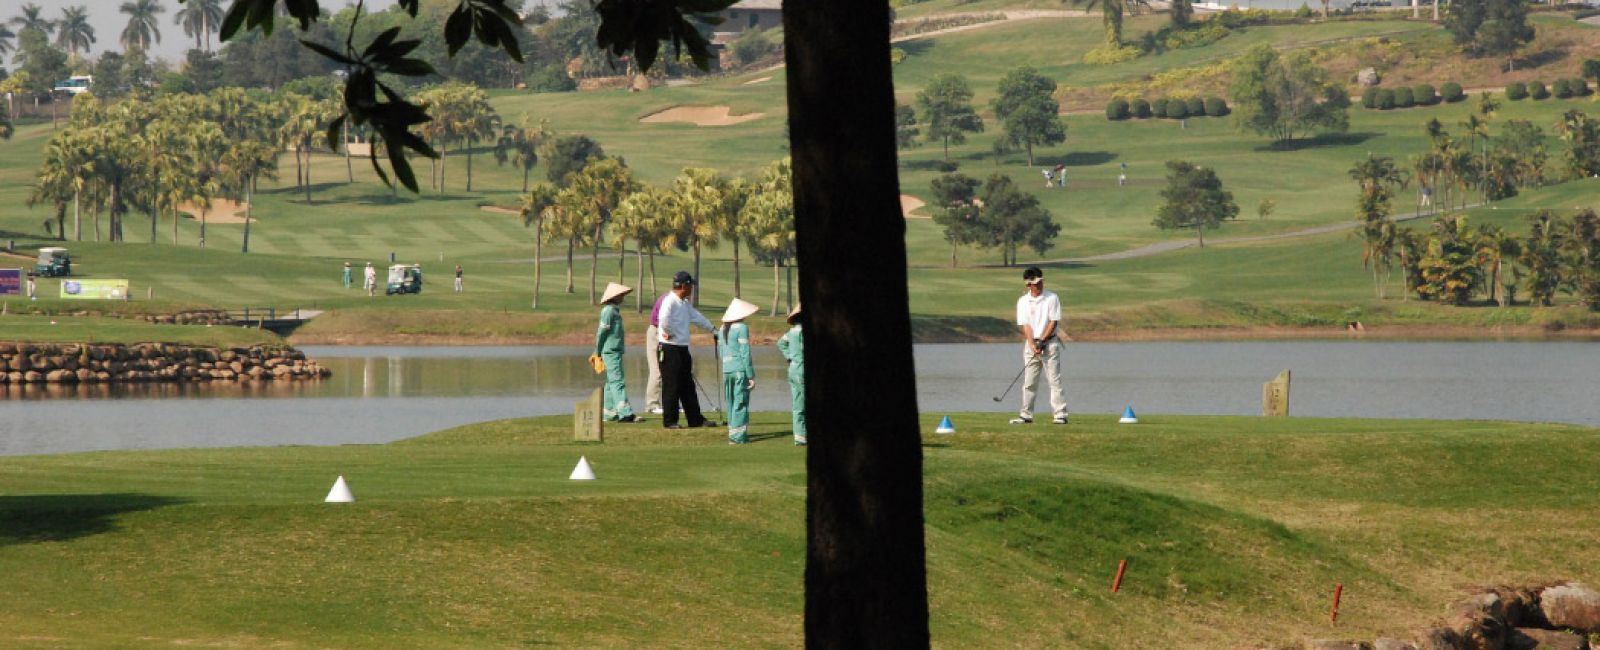 10 Day Northern Vietnam Golf Holiday